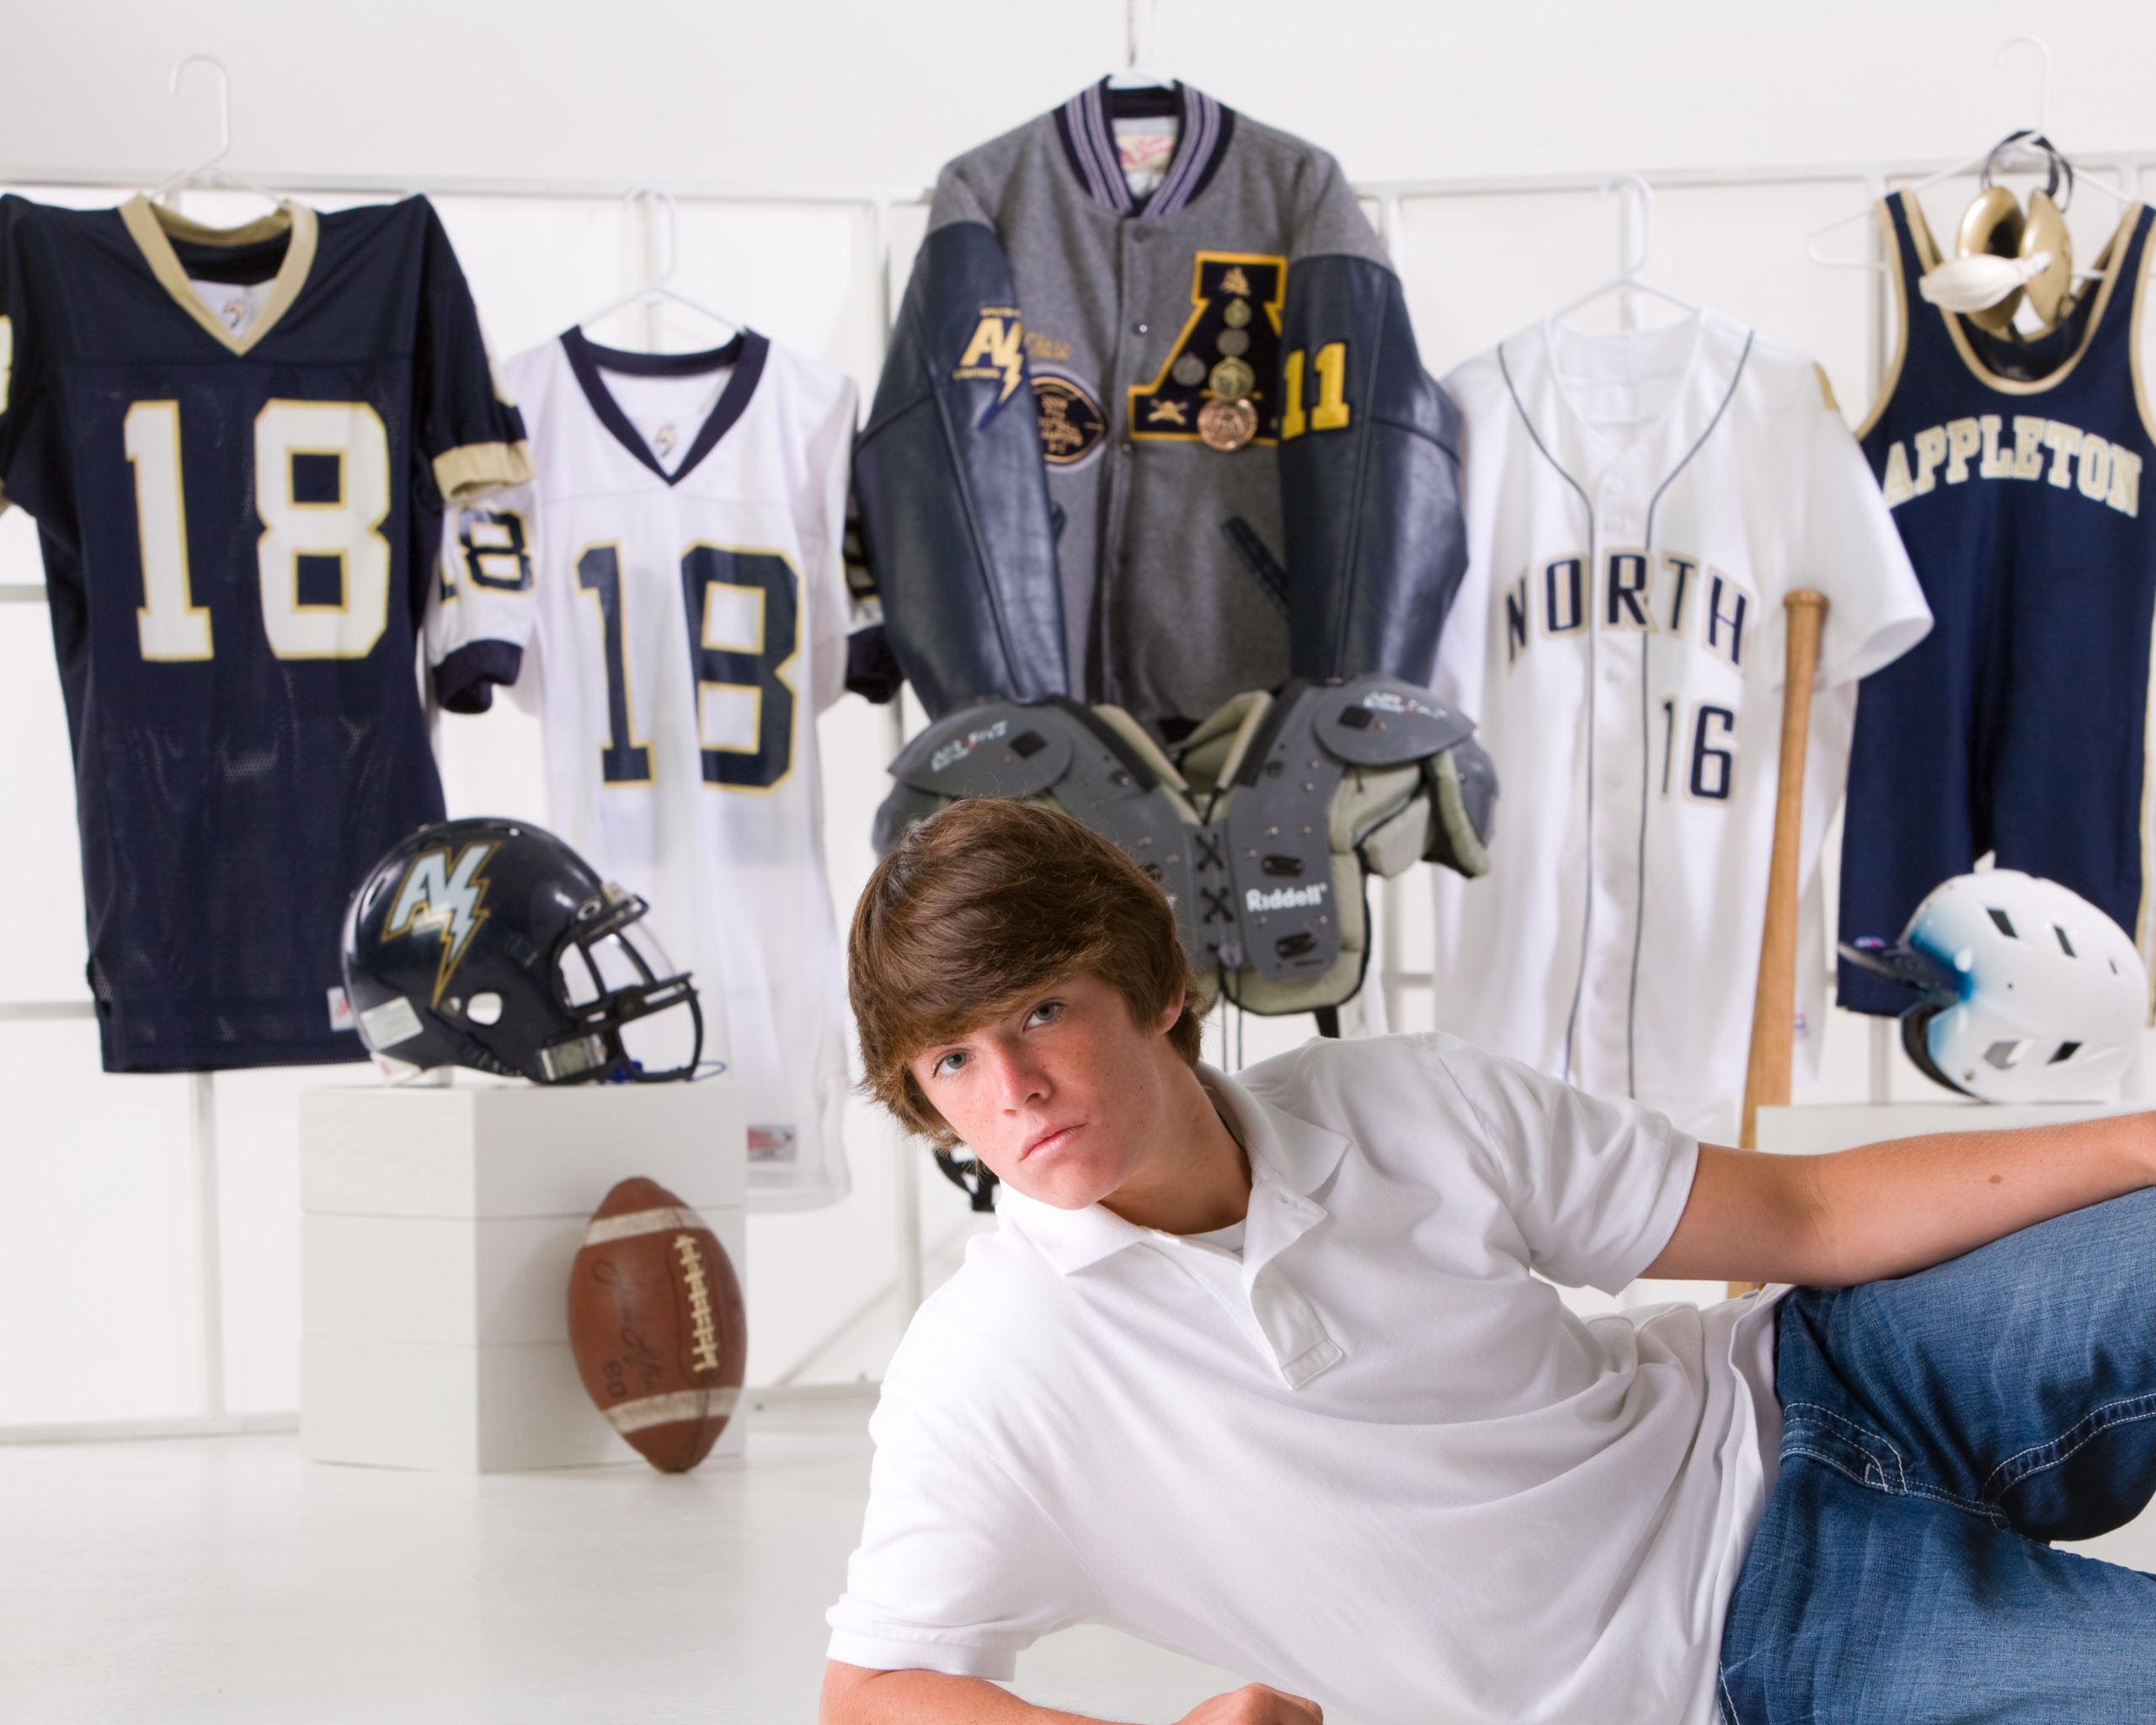 High school senior boy with sports stuff